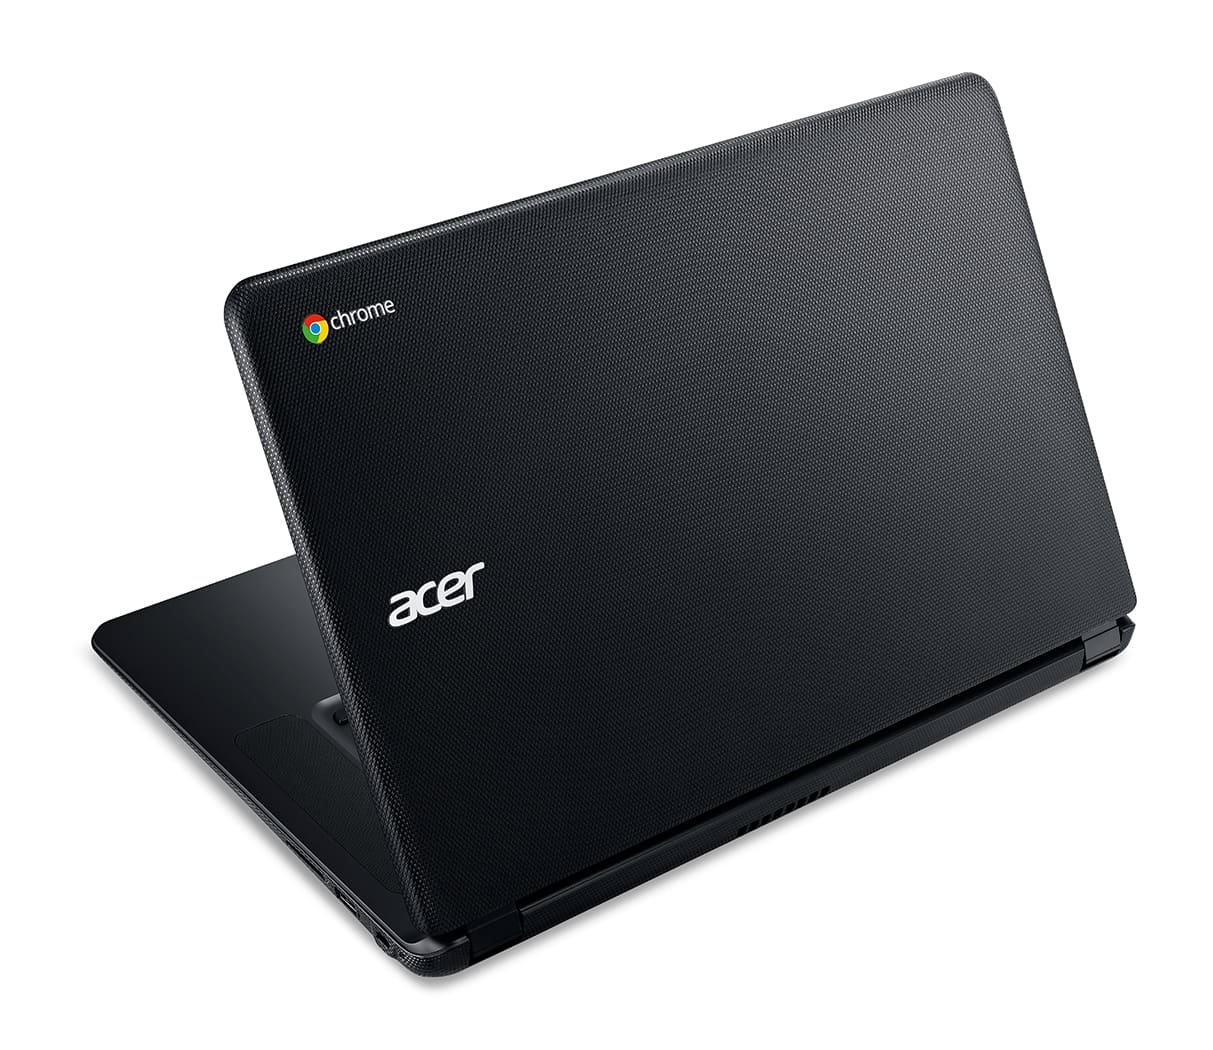 Acer C910 Chromebook rear left facing